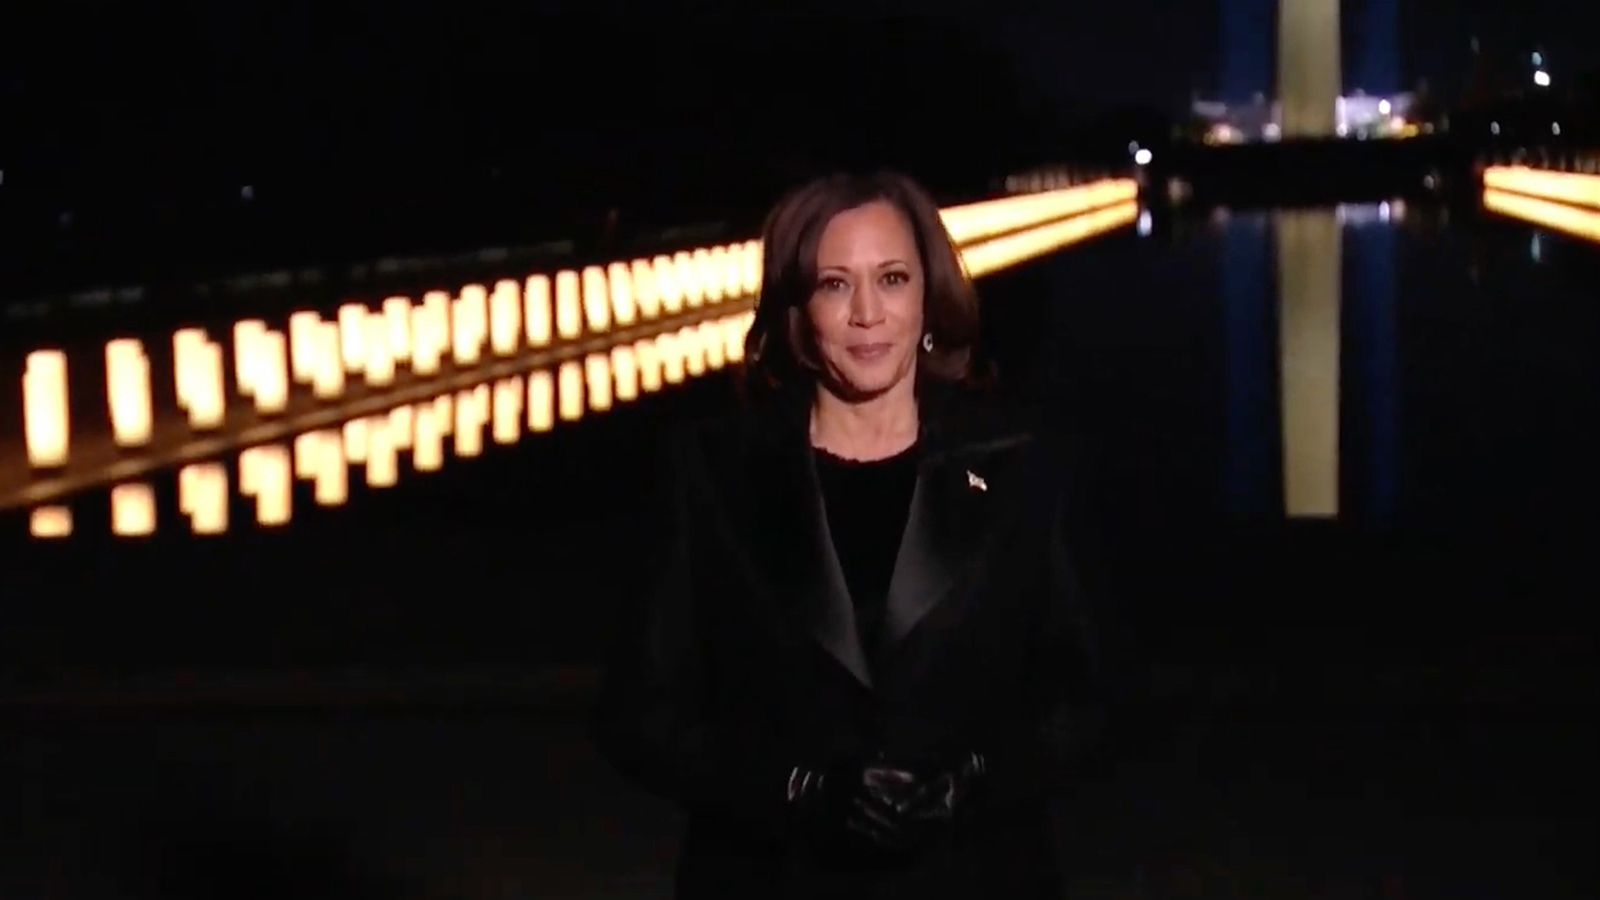 In this screengrab, Vice President Kamala Harris speaks during the Celebrating America Primetime Special on January 20.